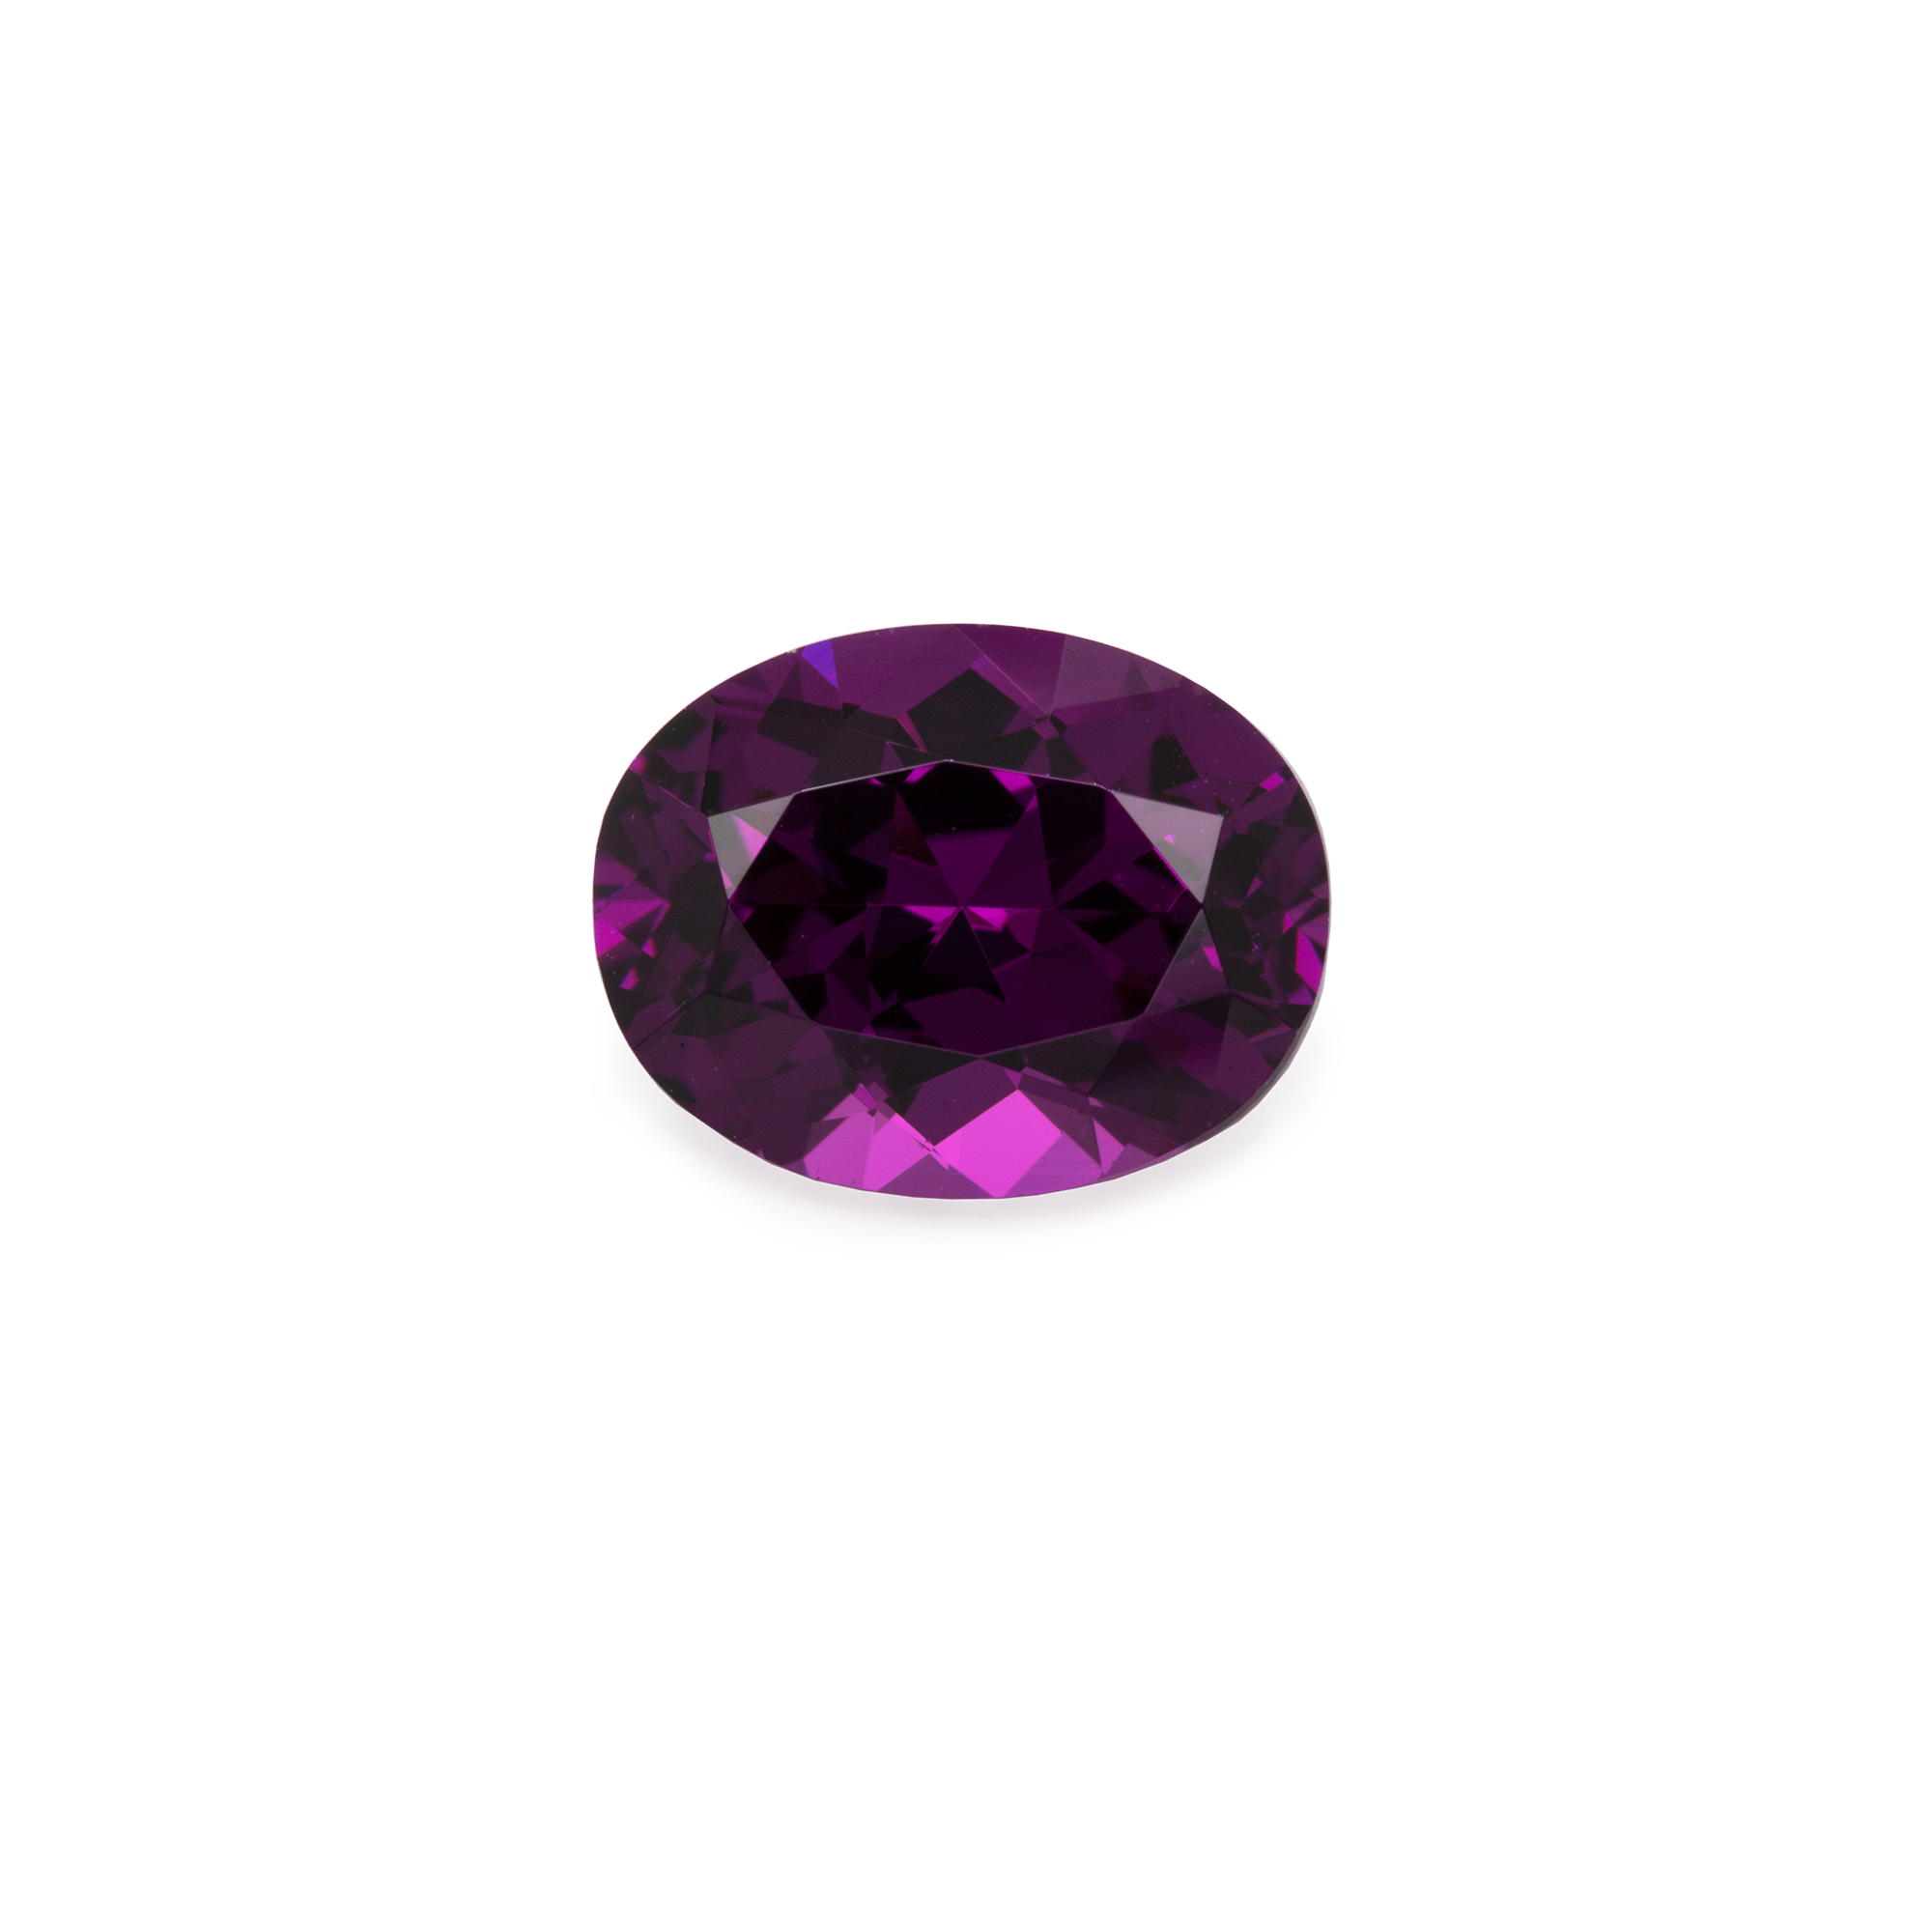 Royal Purple Garnet - lila, oval, 9x7 mm, 2,49 cts, Nr. RP17001